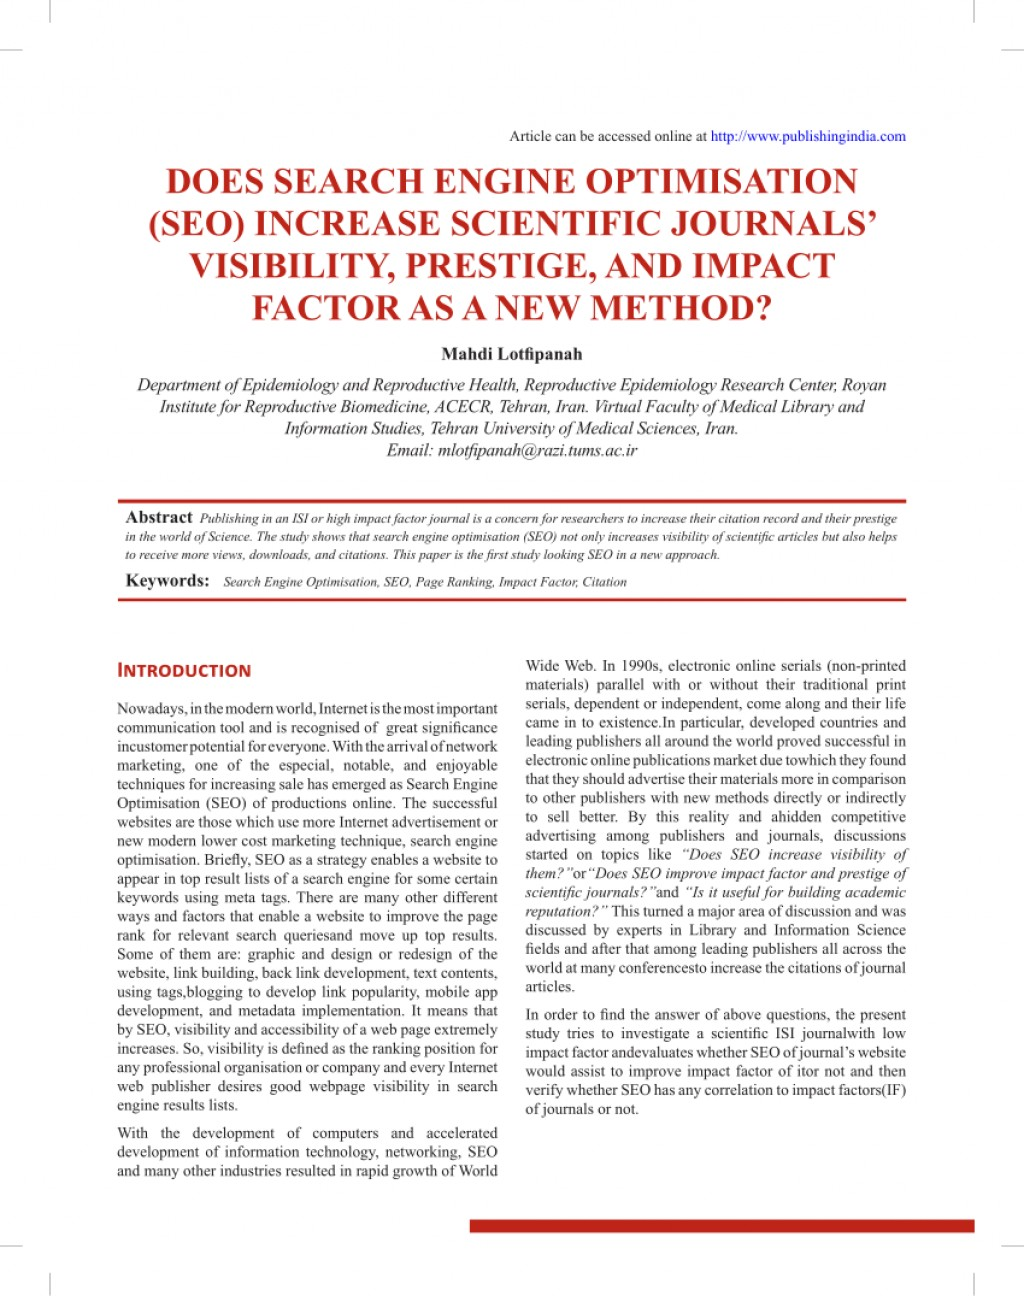 015 Medical Research Paper Search Engines Dreaded Large